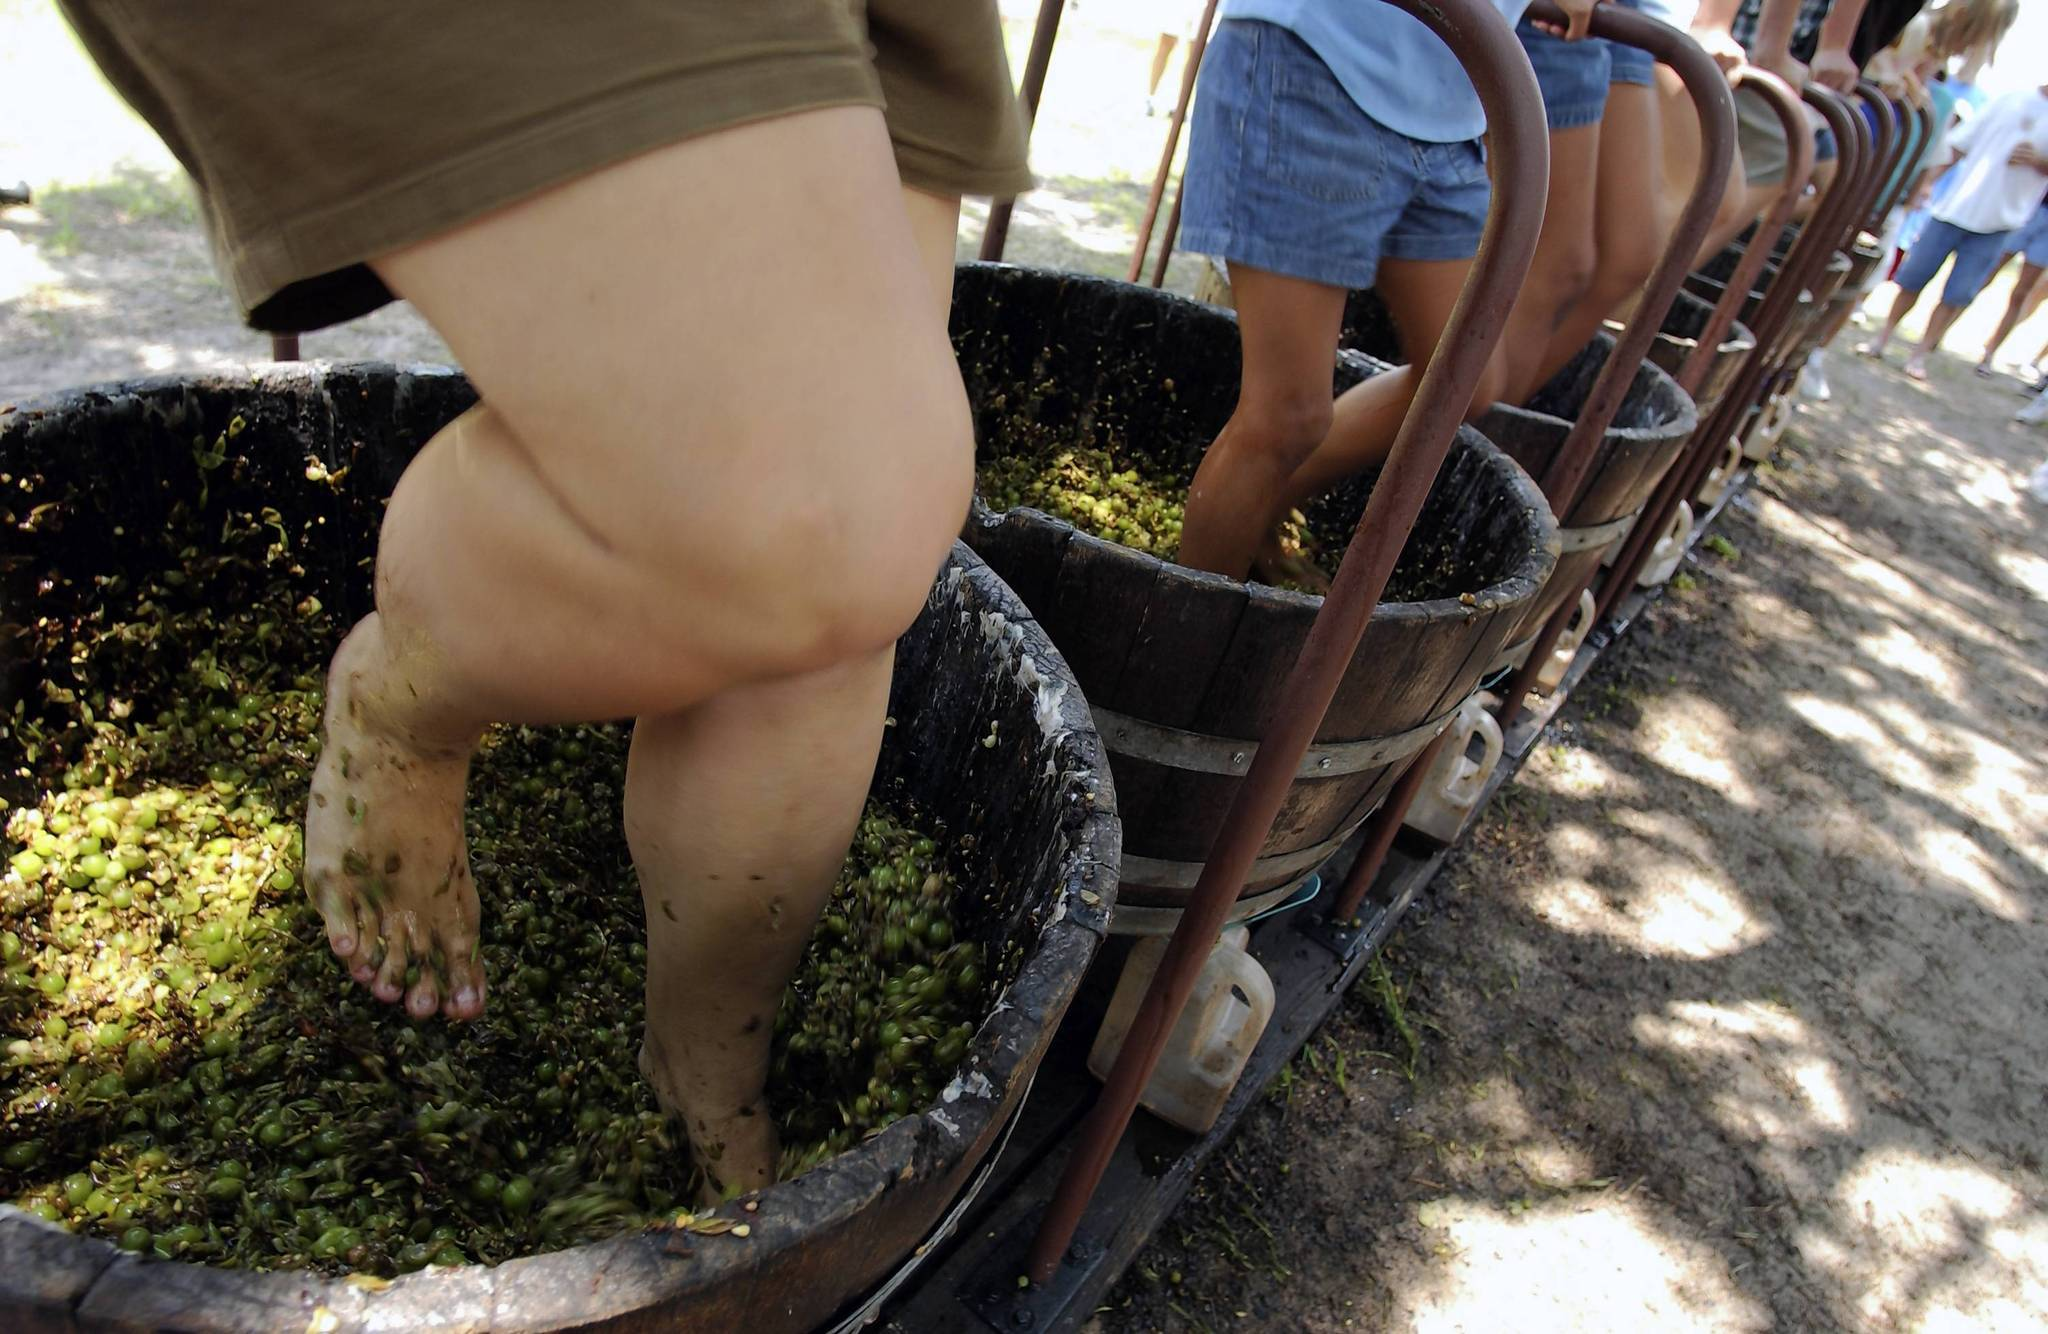 The annual Harvest Festival at Lakeridge Winery and Vineyards features activities such as grape stomping.